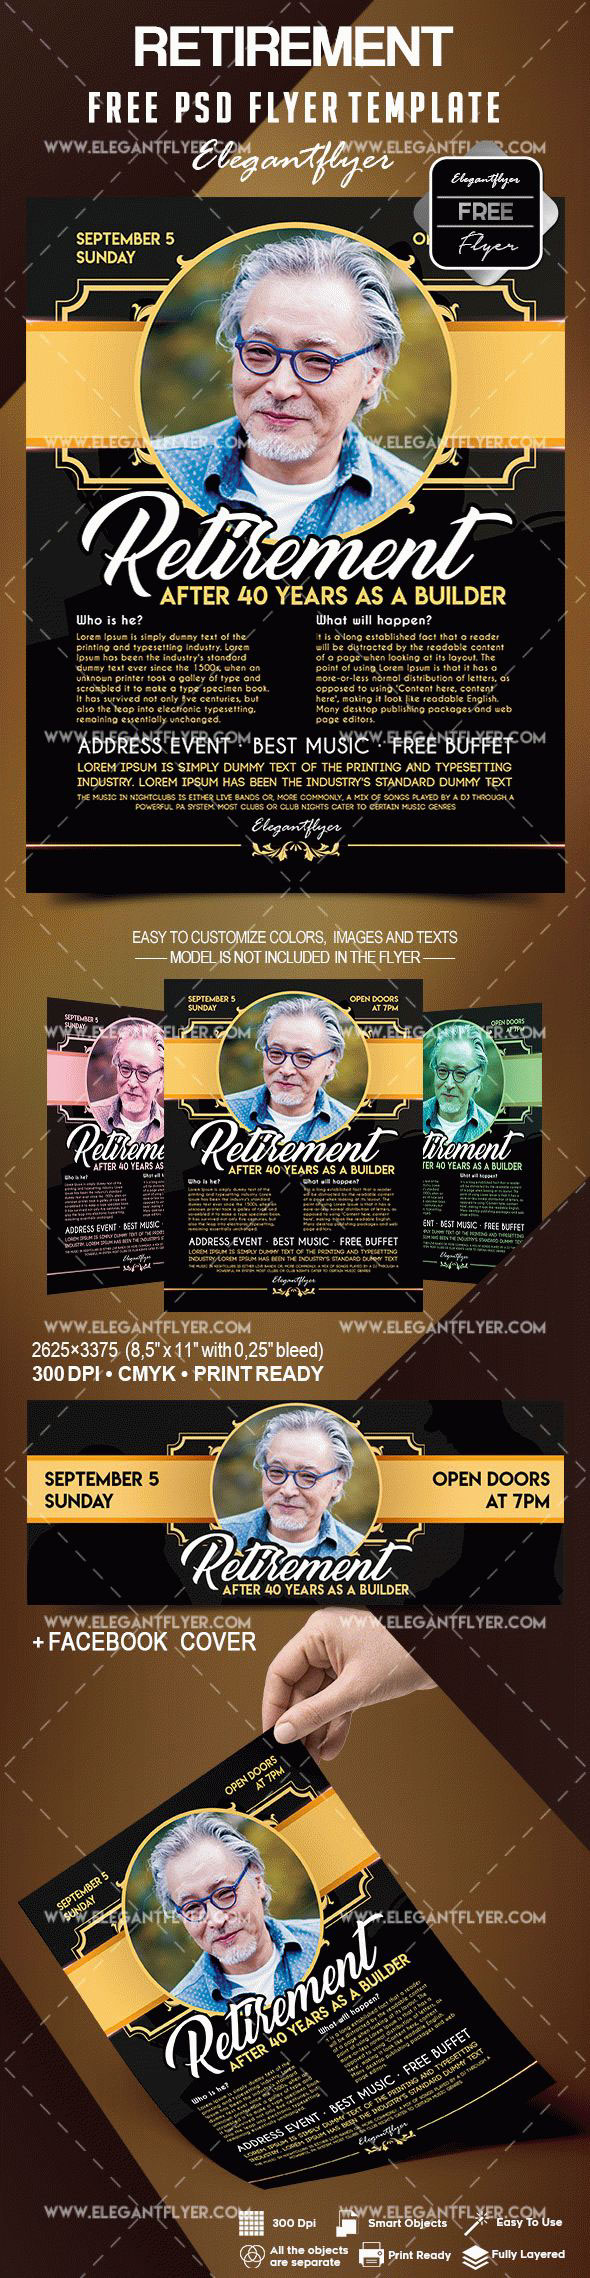 Retirement Flyer Template Free On Behance